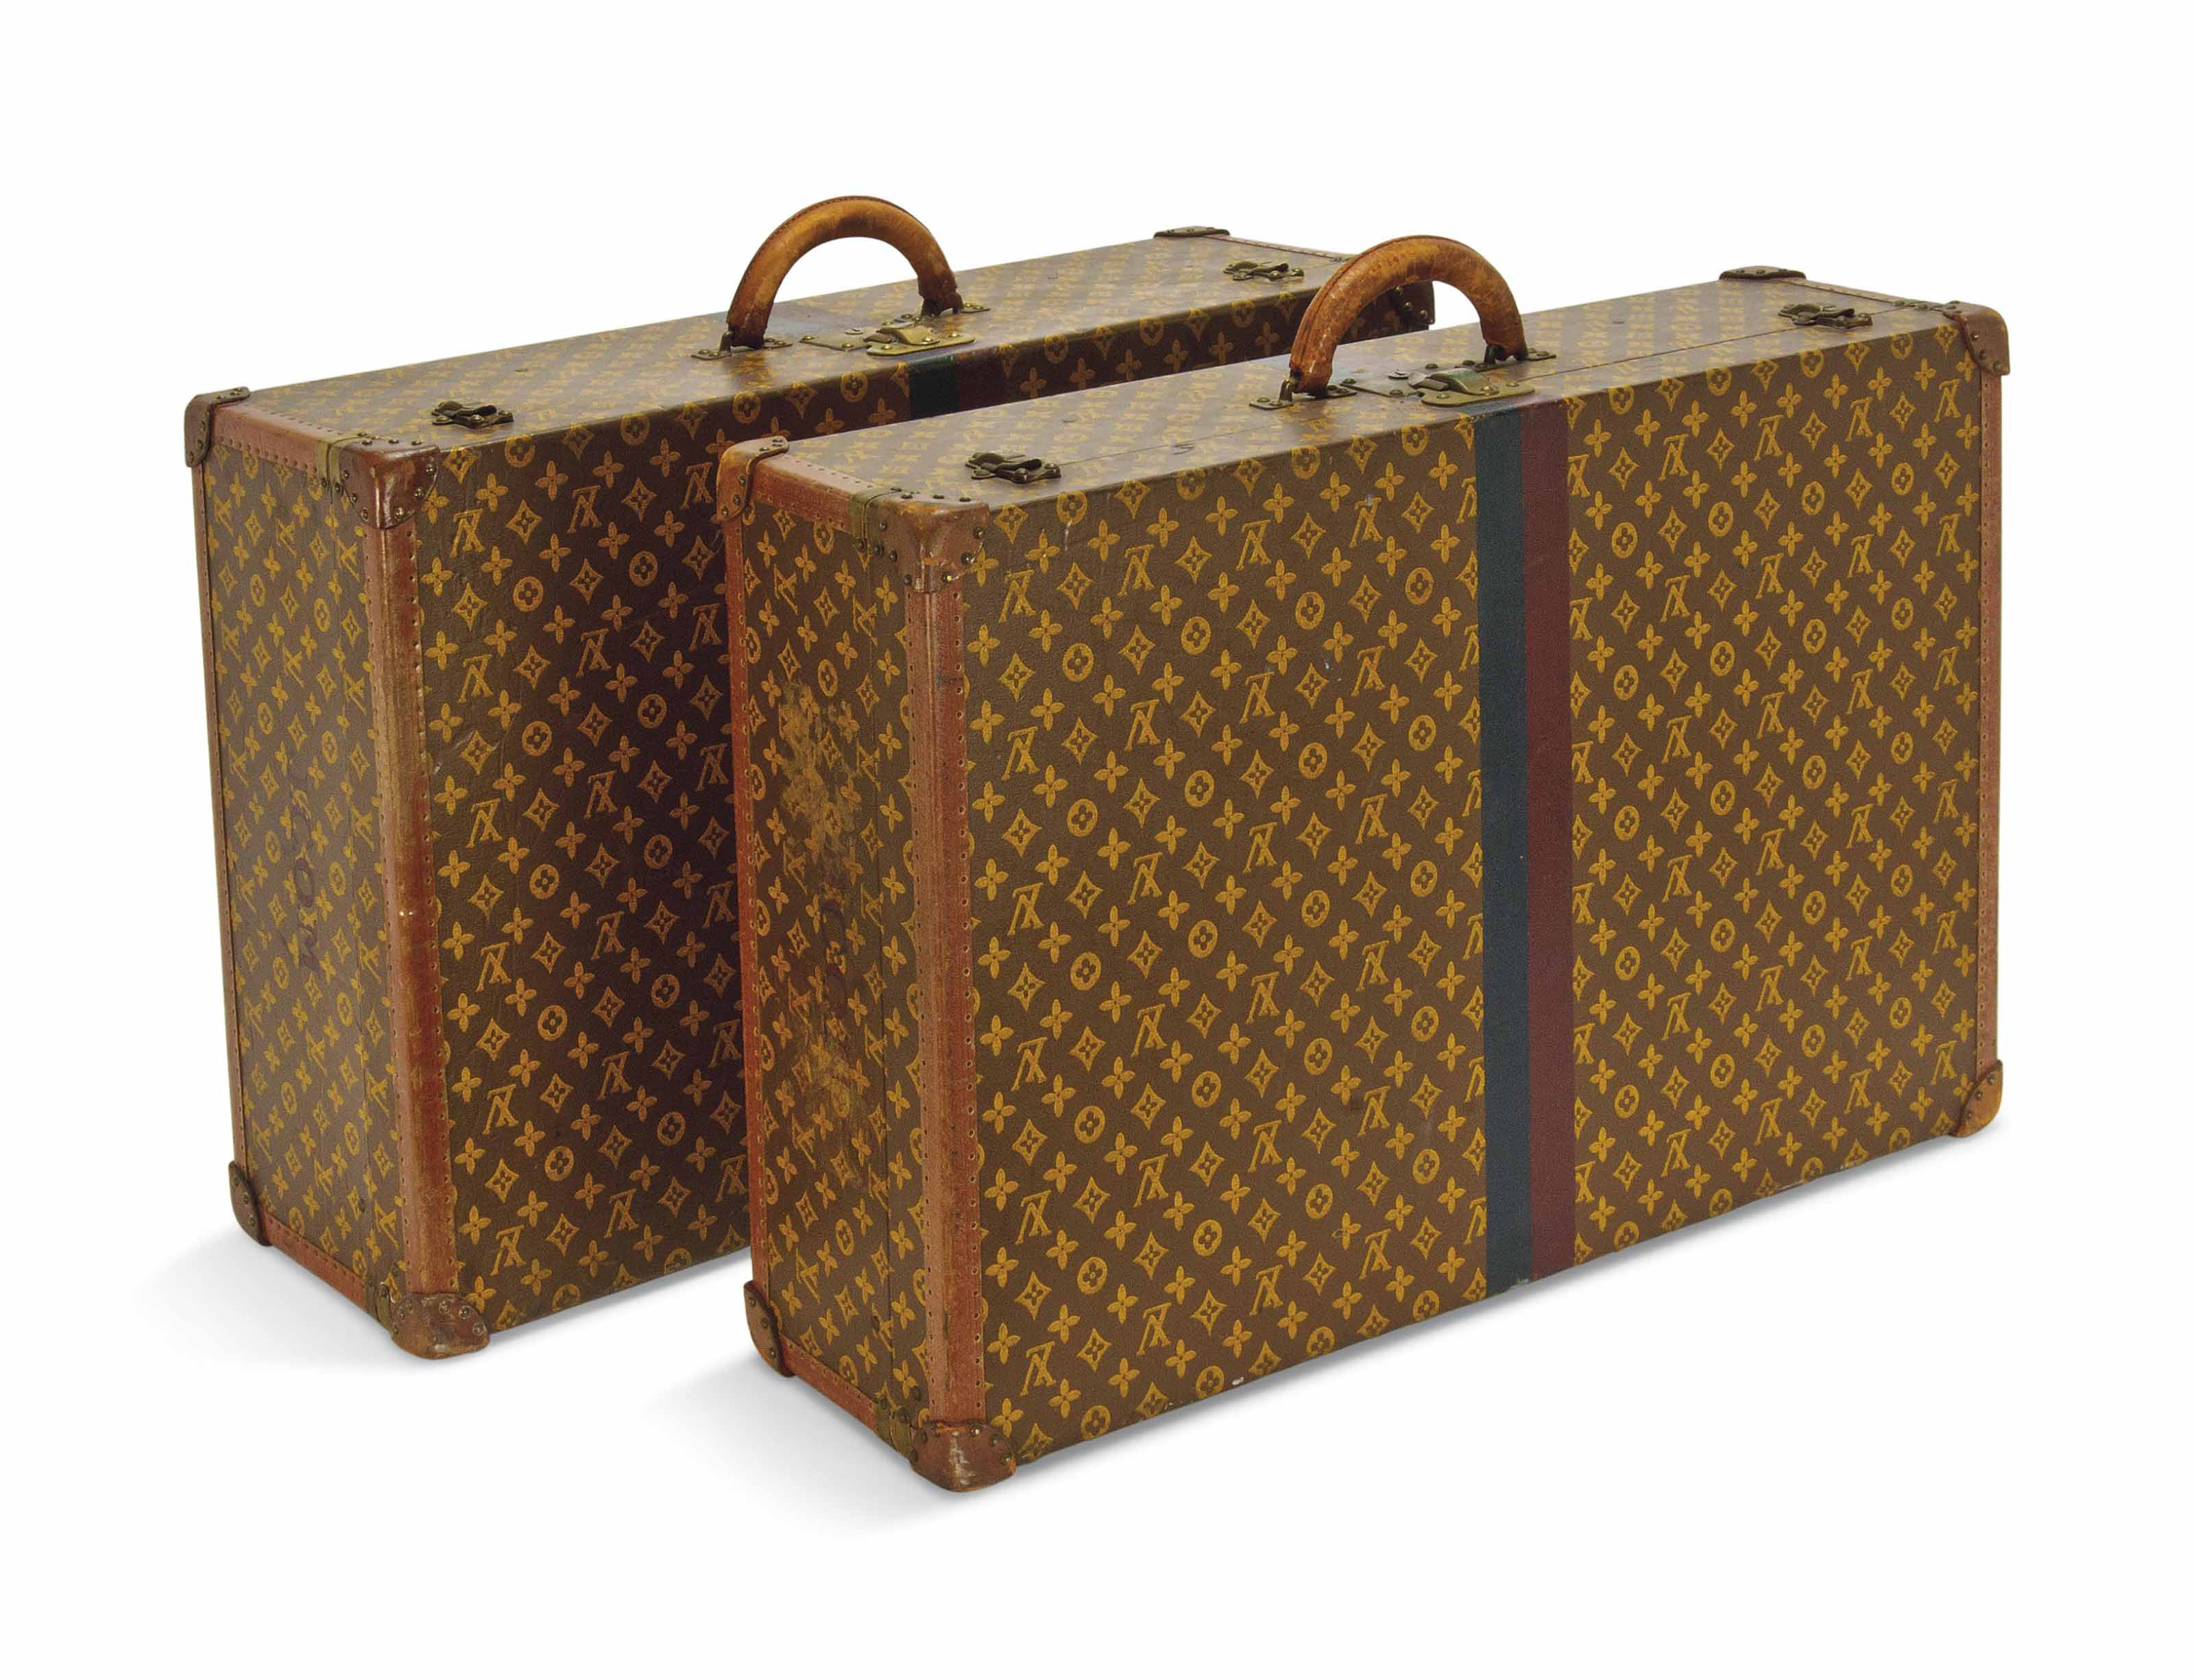 TWO SUITCASES IN MONOGRAM CANV